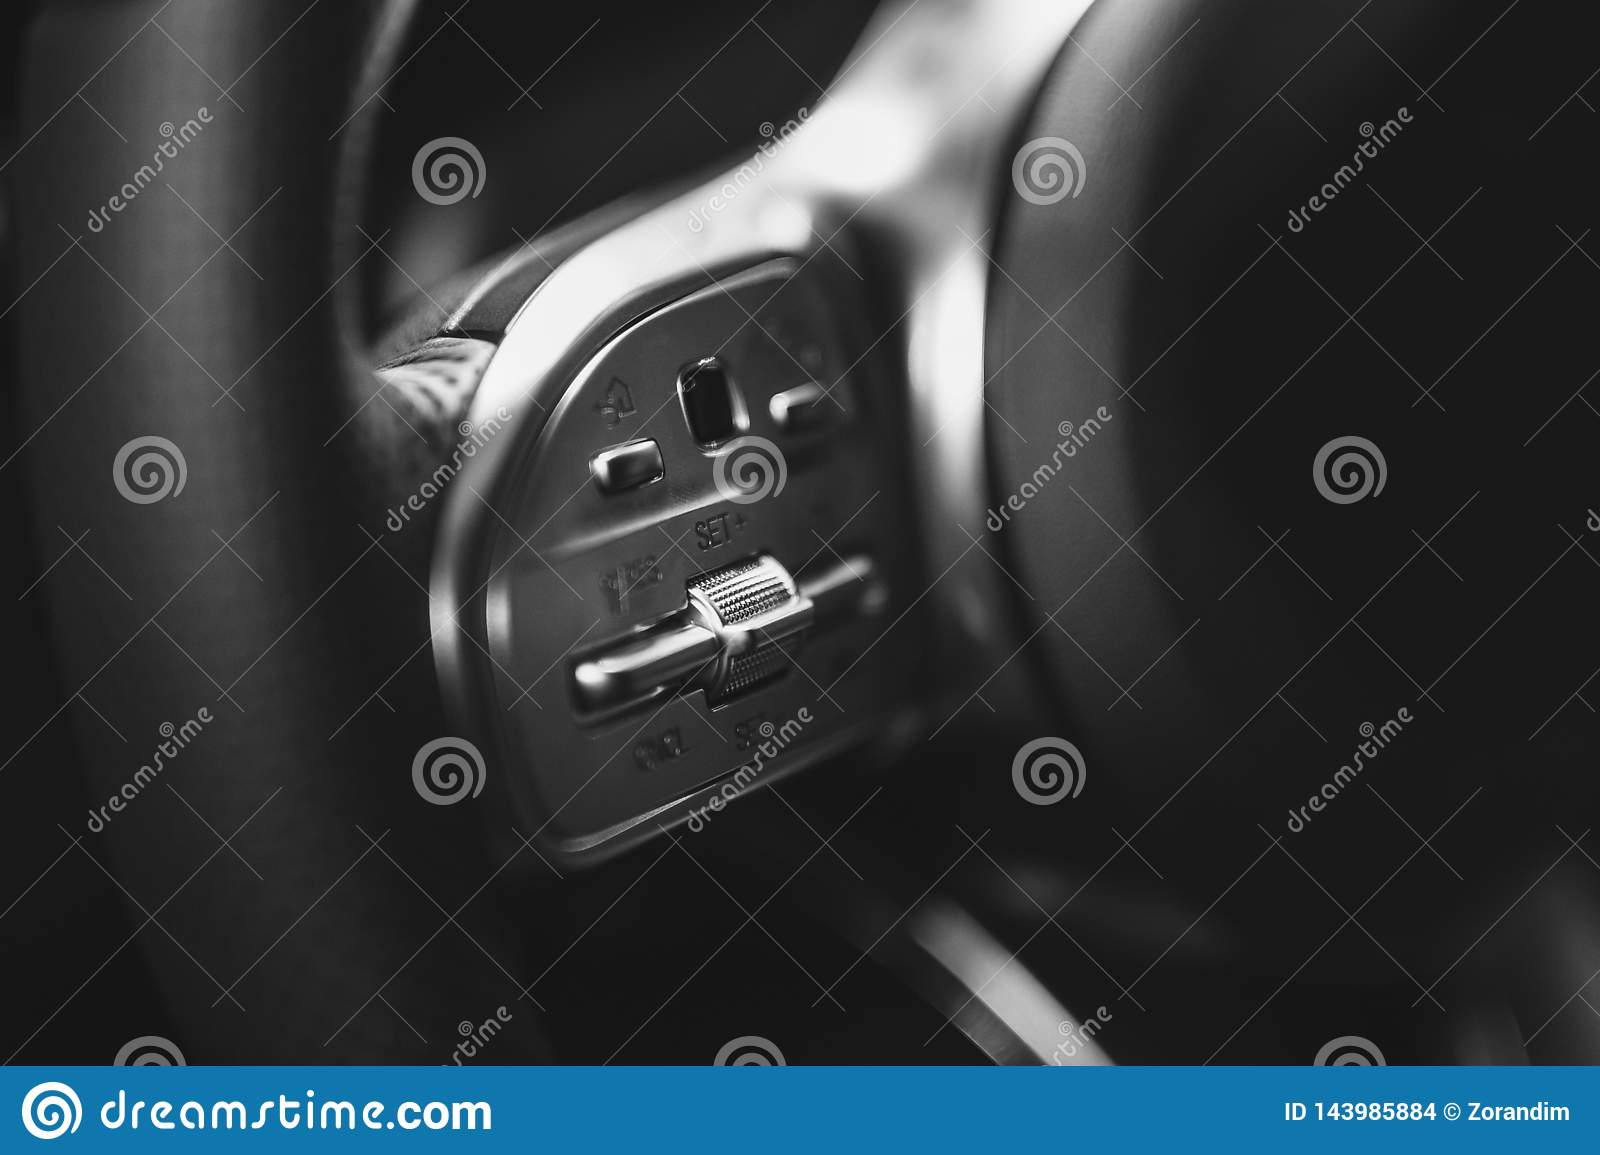 Closeup of car audio control button on the steering wheel